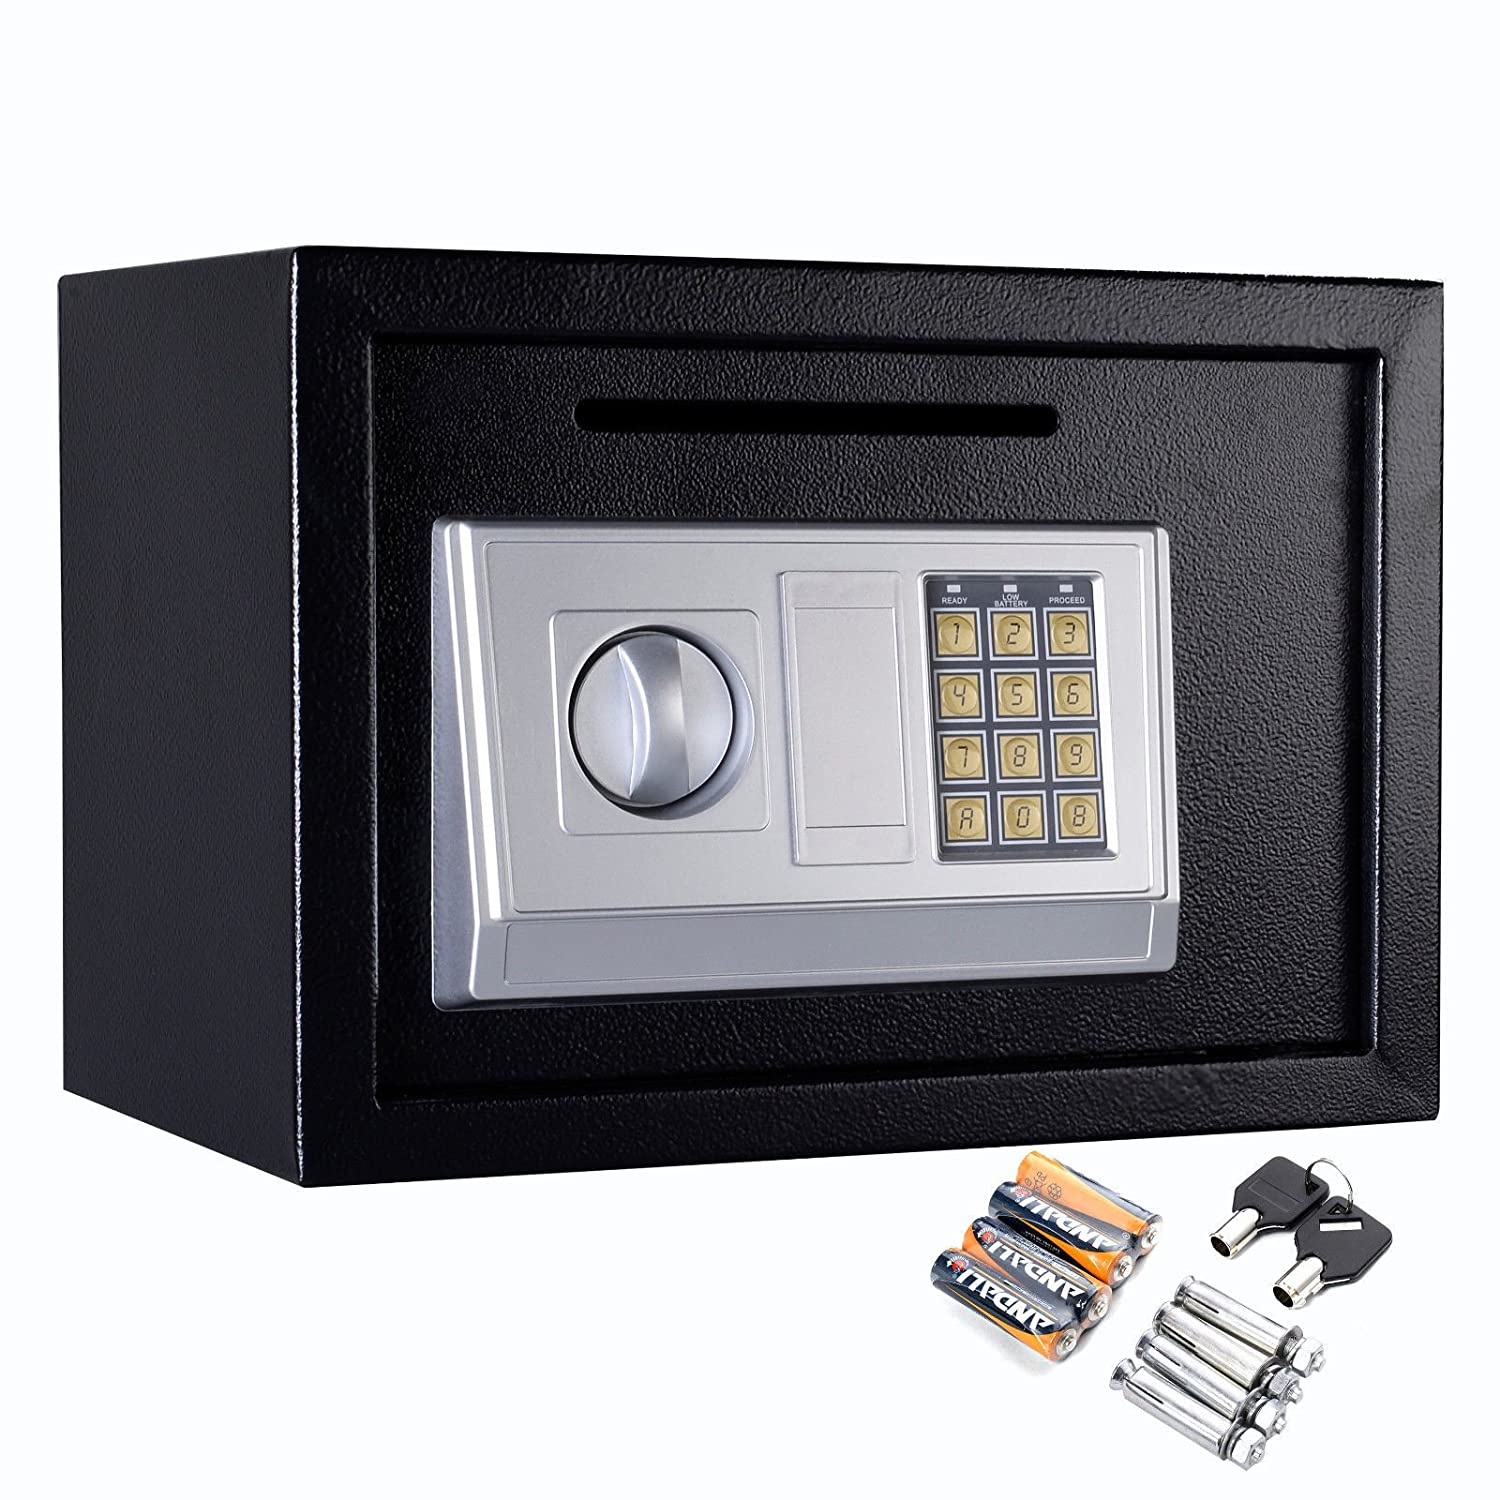 "Safstar Electronic Digital Security Keypad Lock Box Home Office Hotel Safe Business Jewelry Cash Money Gun Cabinet (13.8"" x 10"" x 10"")"